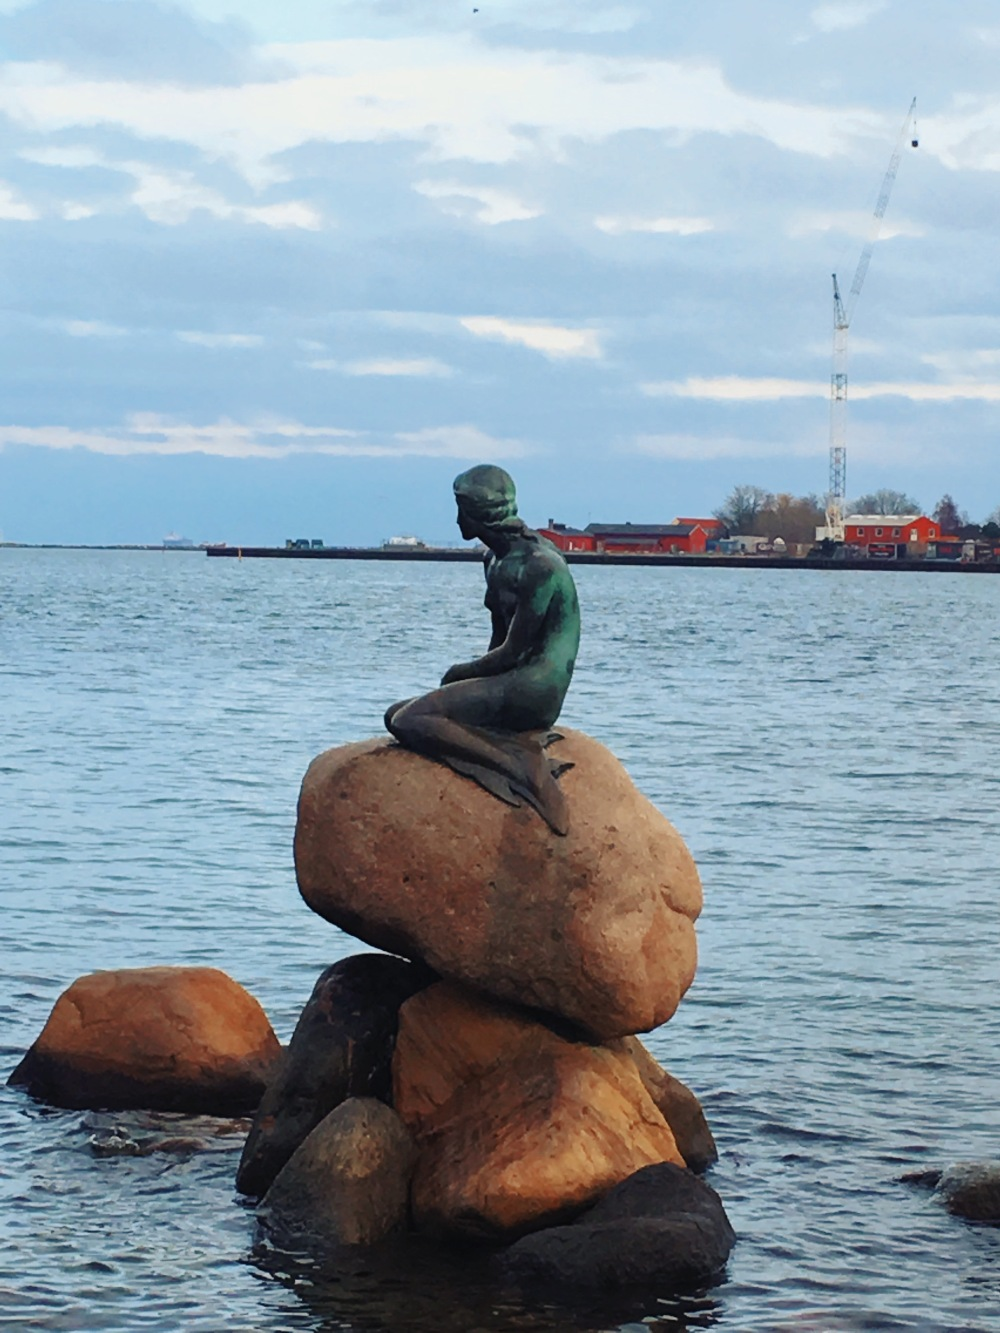 Den Lille Havfrue, The Little Mermaid, Copenhagen